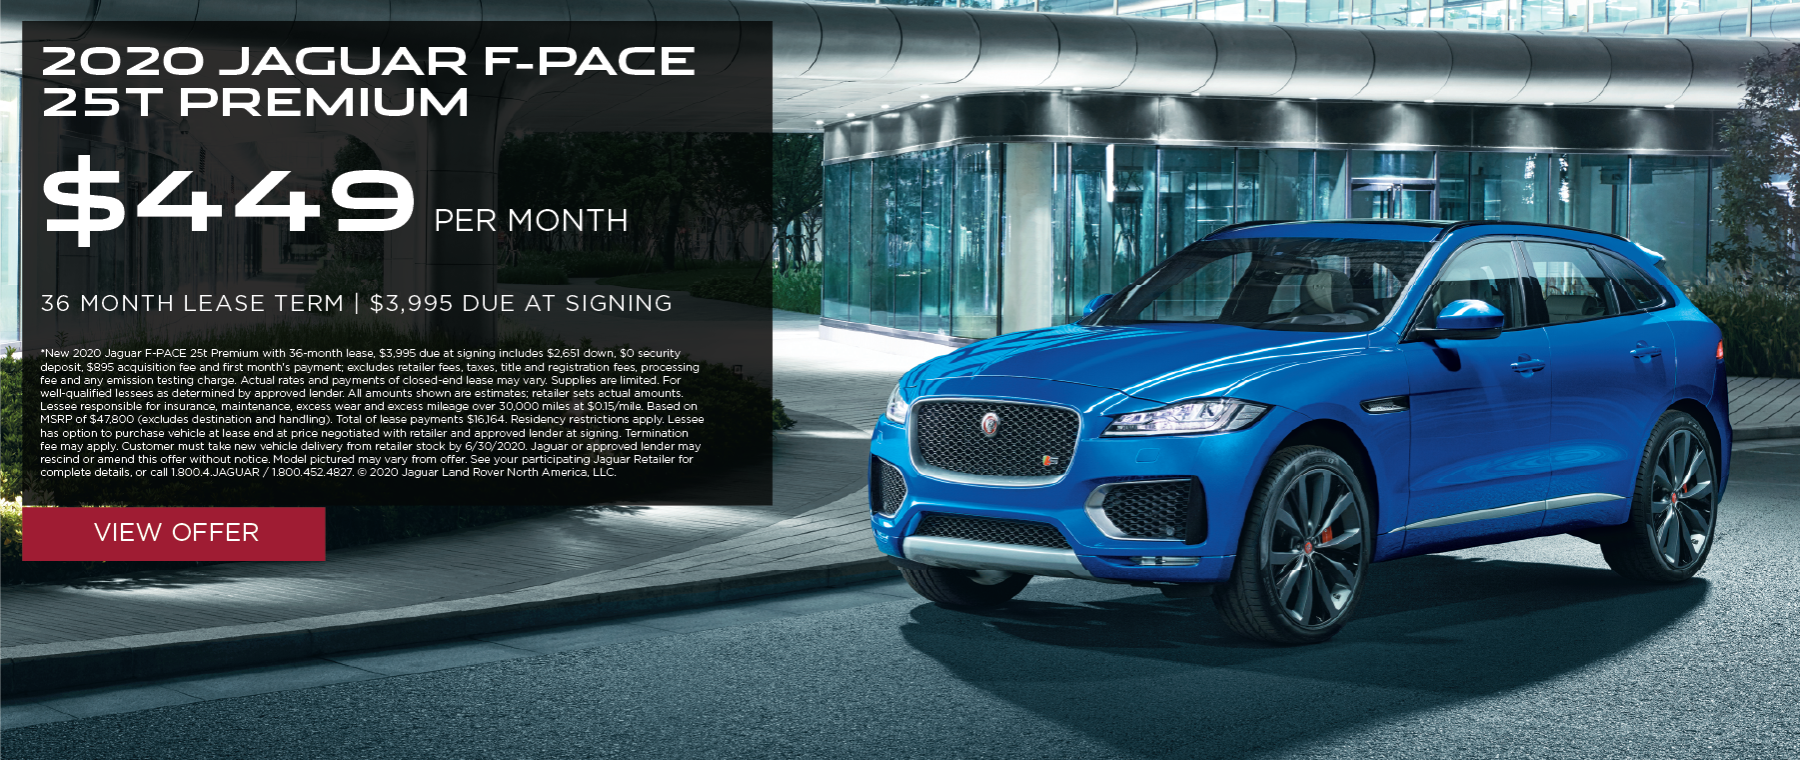 2020 JAGUAR F-PACE 25T PREMIUM. $449 PER MONTH. 36 MONTH LEASE TERM. $3,995 CASH DUE AT SIGNING. $0 SECURITY DEPOSIT. 10,000 MILES PER YEAR. EXCLUDES RETAILER FEES, TAXES, TITLE AND REGISTRATION FEES, PROCESSING FEE AND ANY EMISSION TESTING CHARGE. OFFER ENDS 6/30/2020.